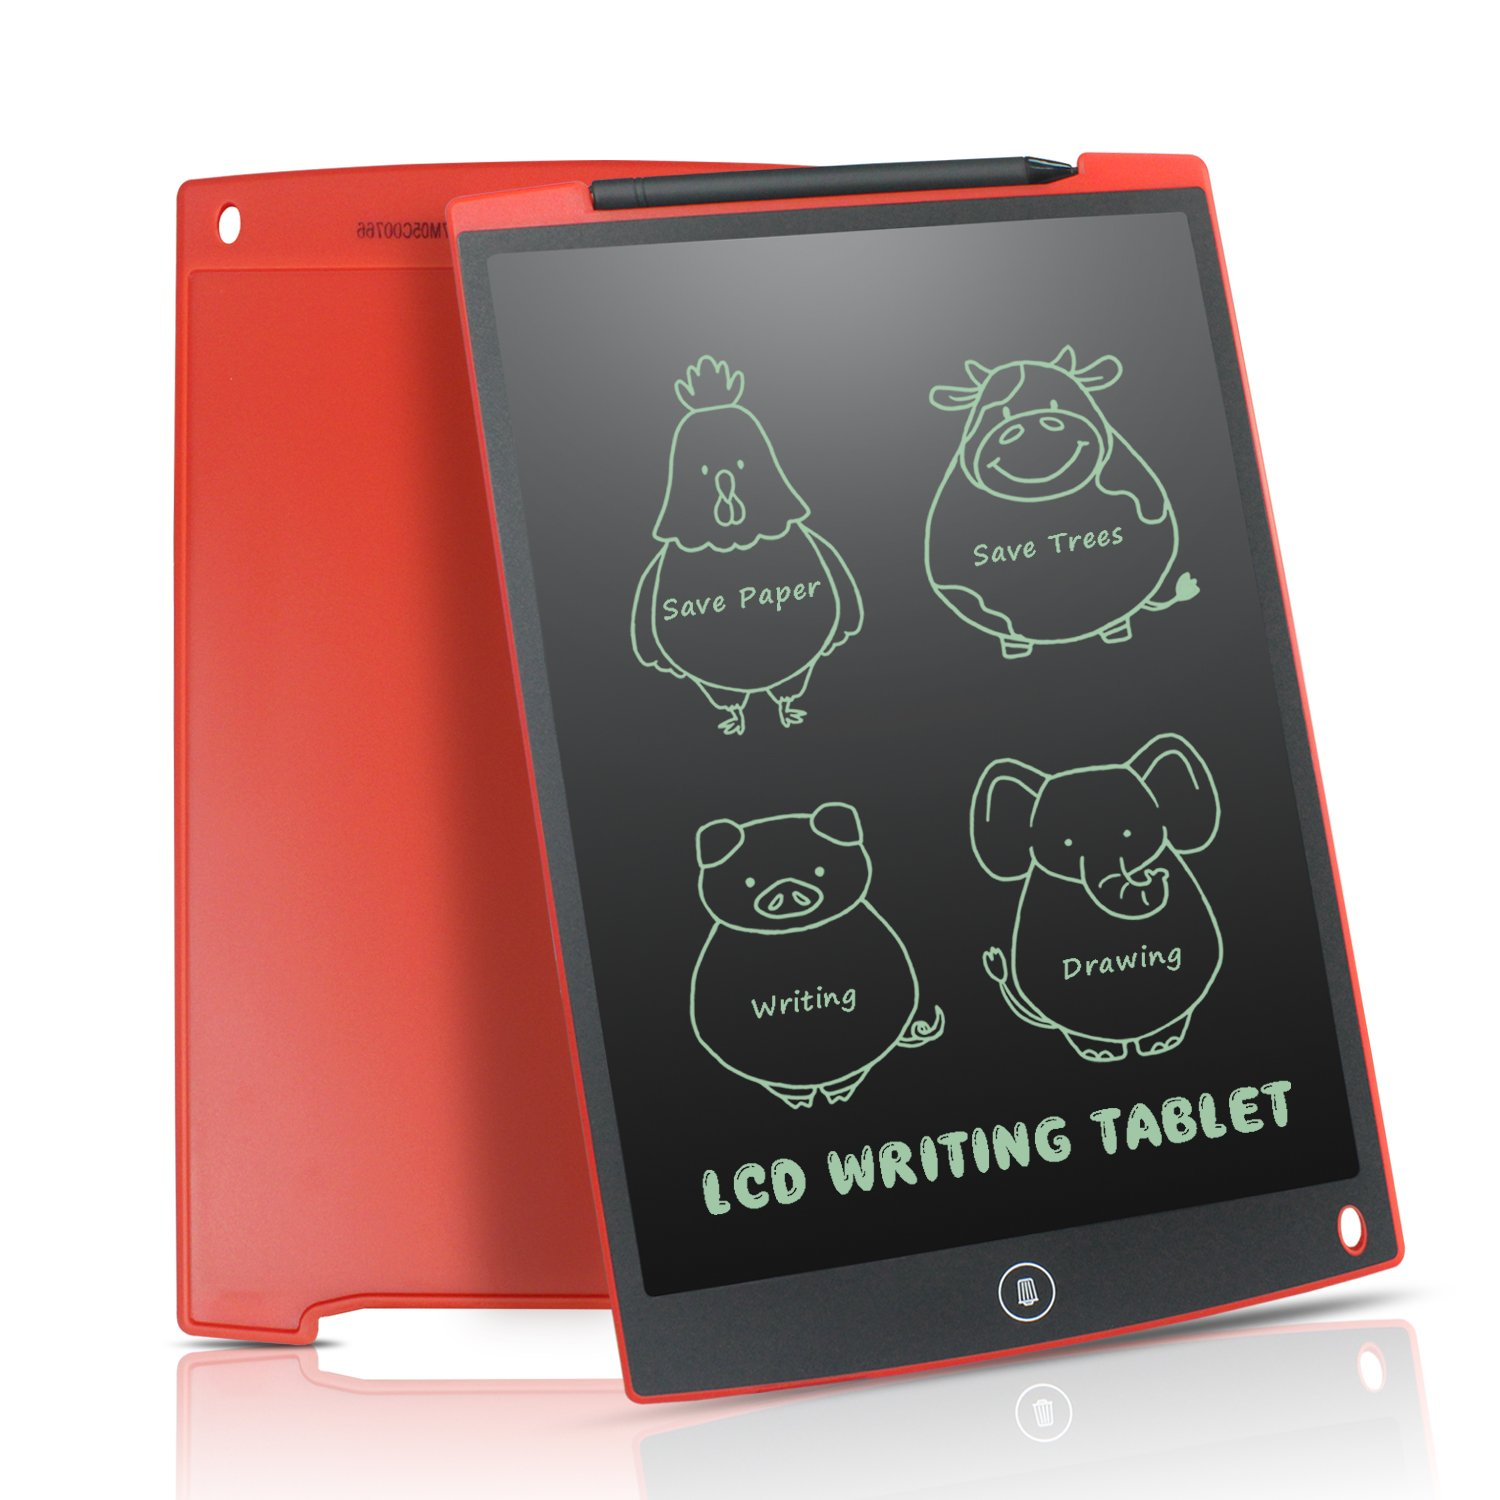 LCD Writing Tablet 12 Inch - HOMESTEC Drawing Board Gifts for Kids Office Writing Memo Board (Red) BKWT120A-RD